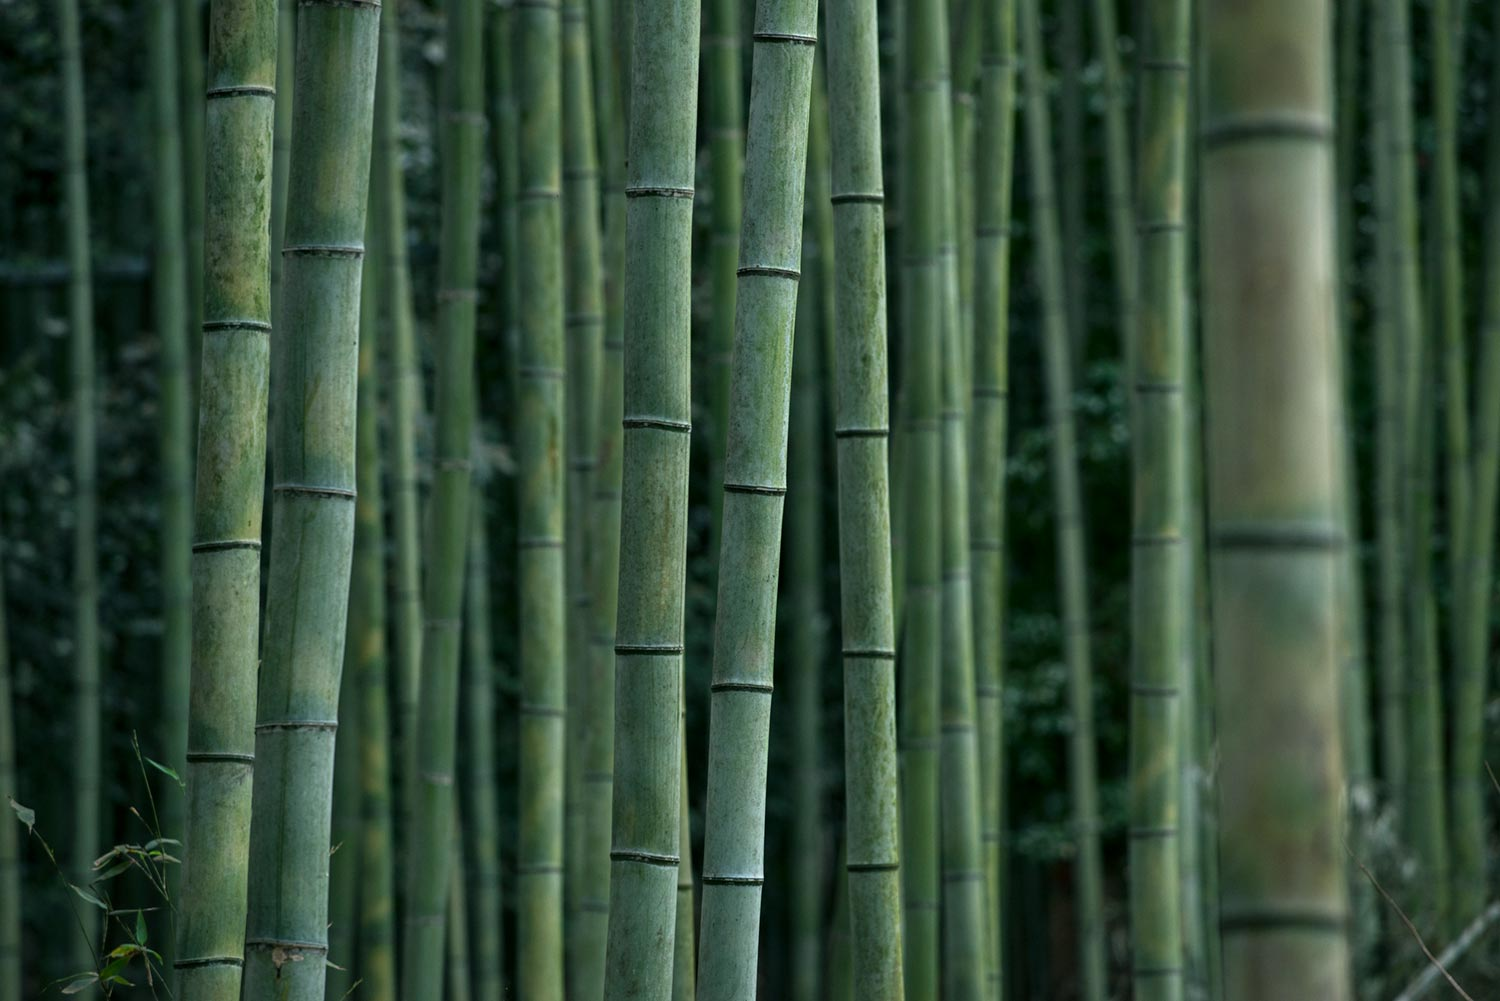 Bamboo - A Sustainable, Biodegradable Alternative